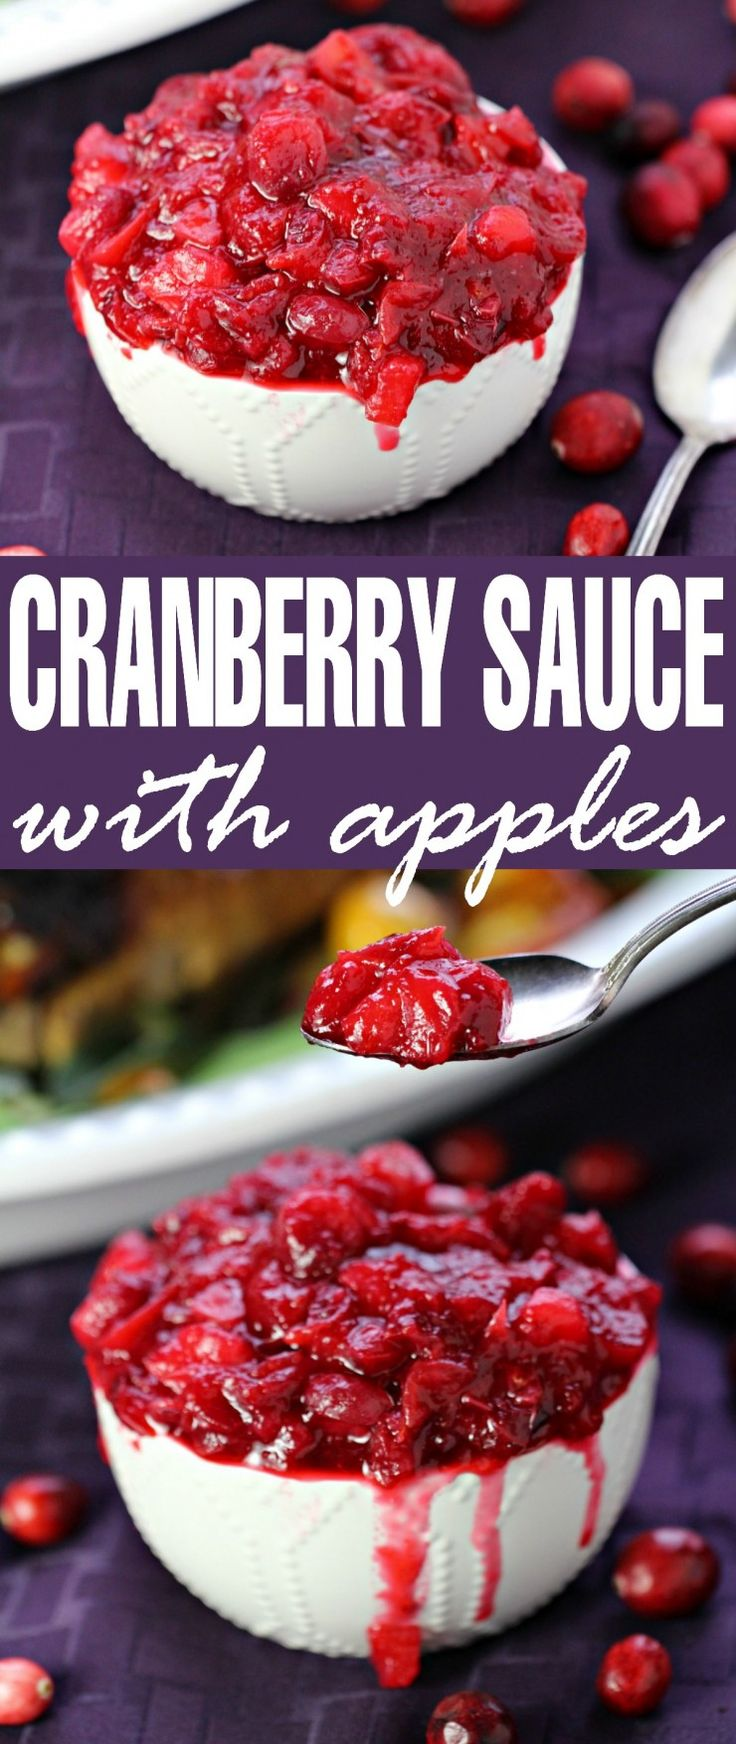 Update your Homemade Cranberry Sauce with apples and spice for an easy twist on the classic Thanksgiving side dish. This would be great for Christmas dinner too!